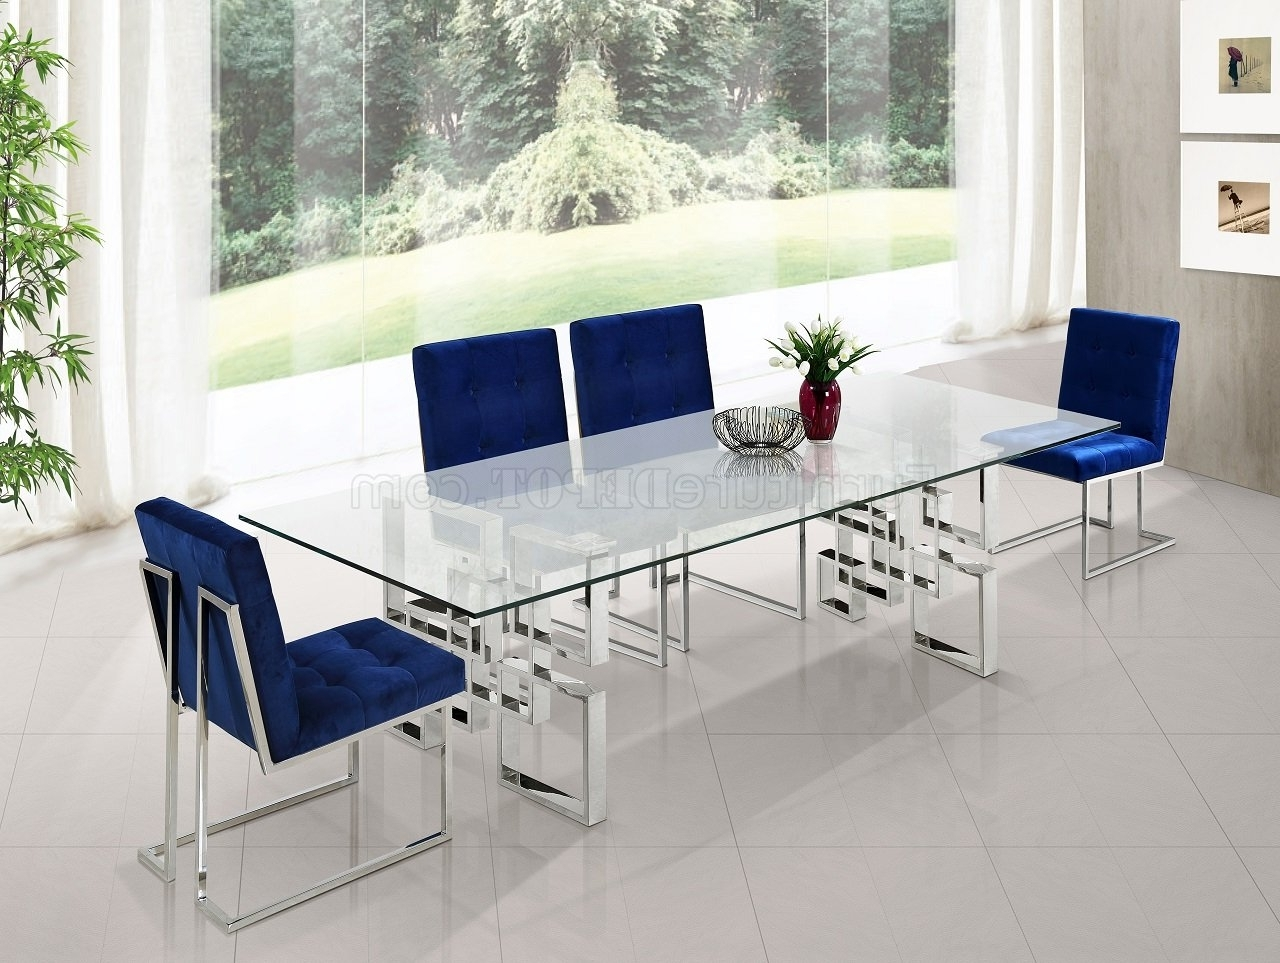 Popular Alexis 731 Chrome Dining Table W/glass Top & Optional Chairs For Chrome Dining Tables (View 8 of 25)